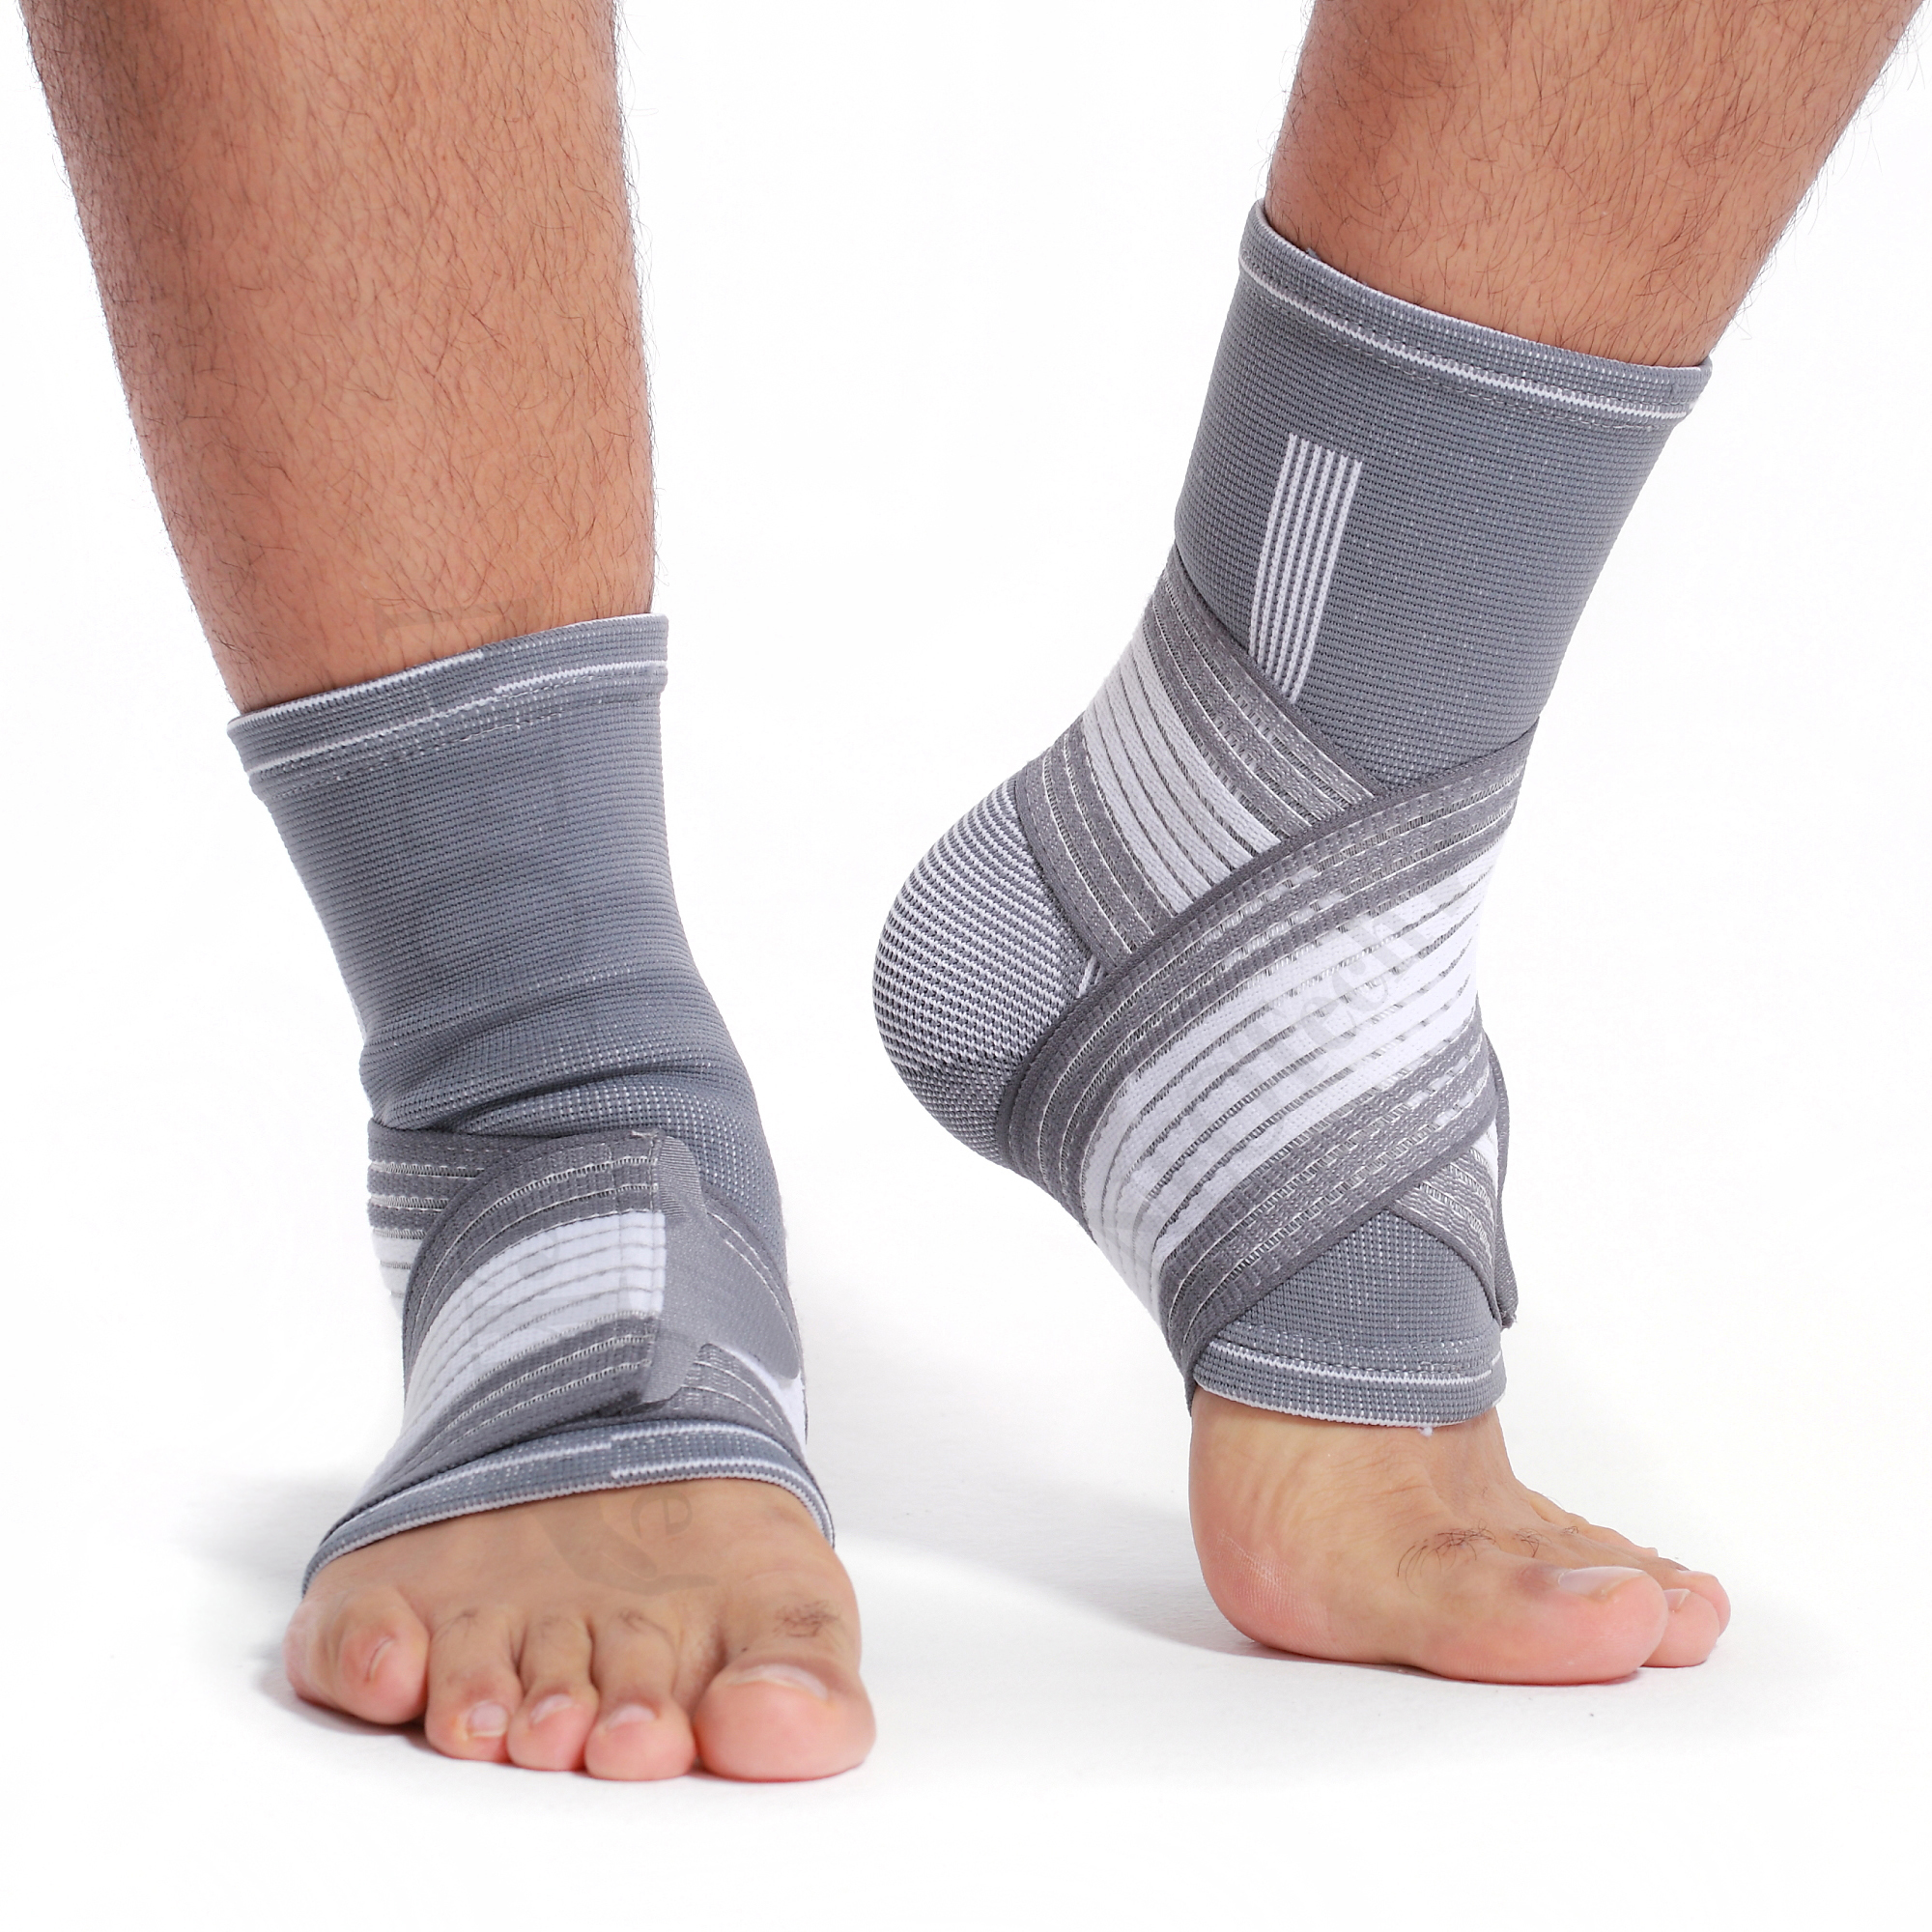 Ankle Sprain Treatment and Causes